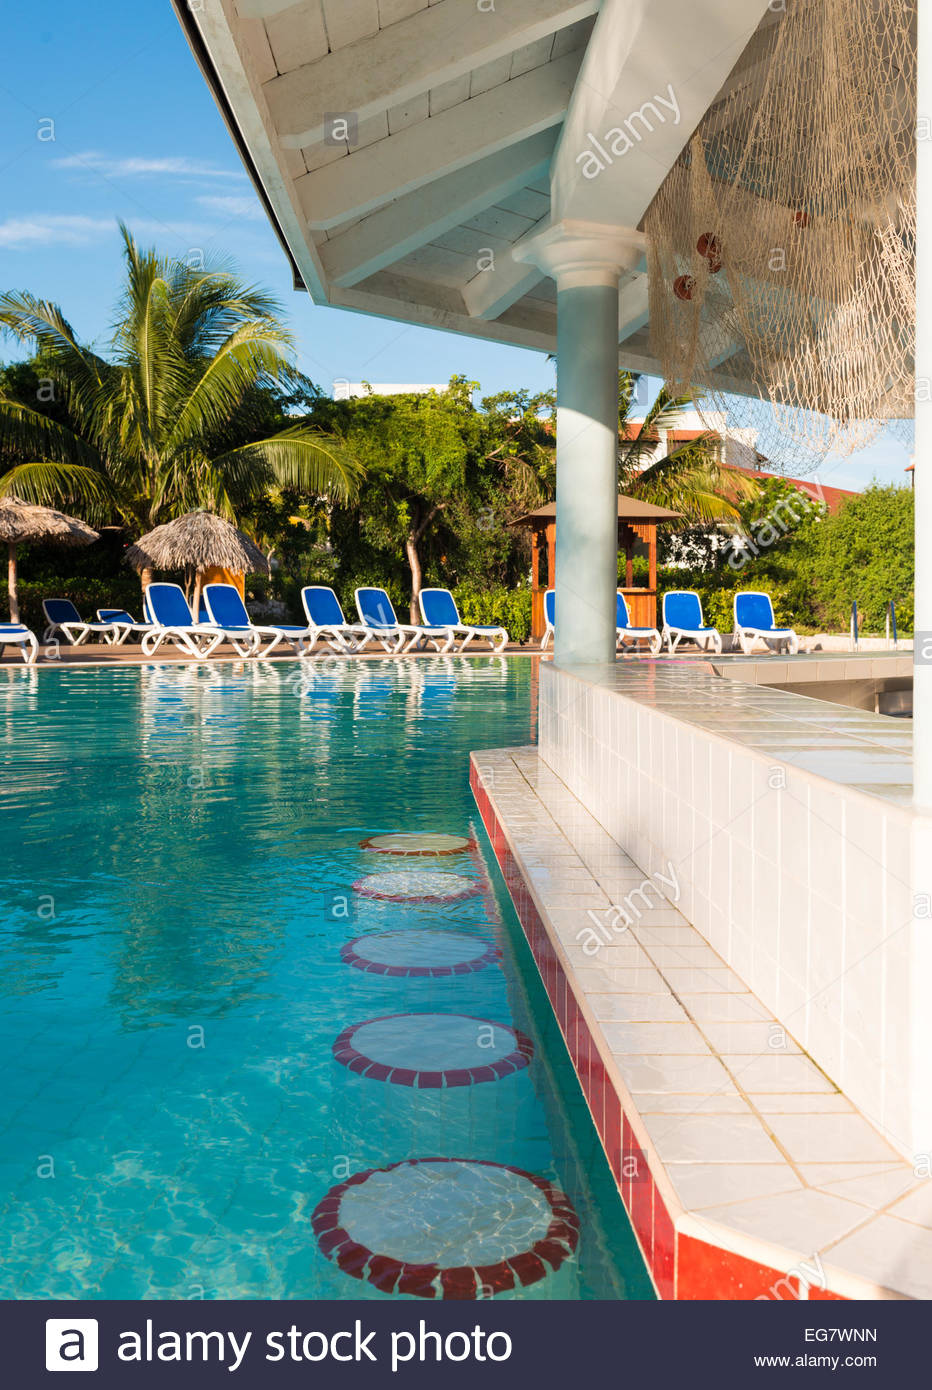 Memories Paraiso Azul In Cuba This Resort Is Operated By German